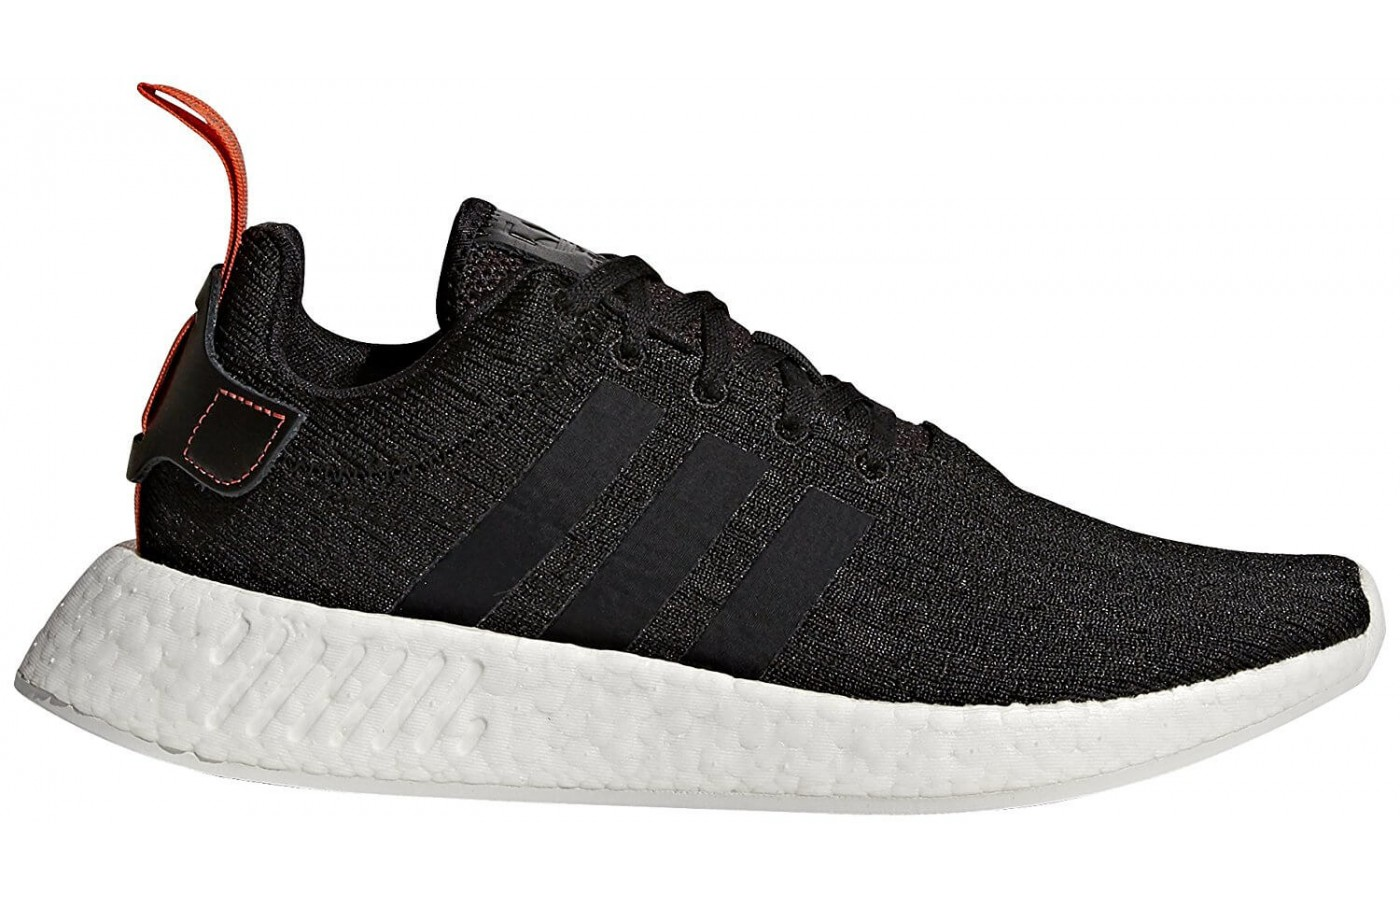 low priced d35b7 366a1 Adidas NMD R2 Reviewed for Performance and Quality